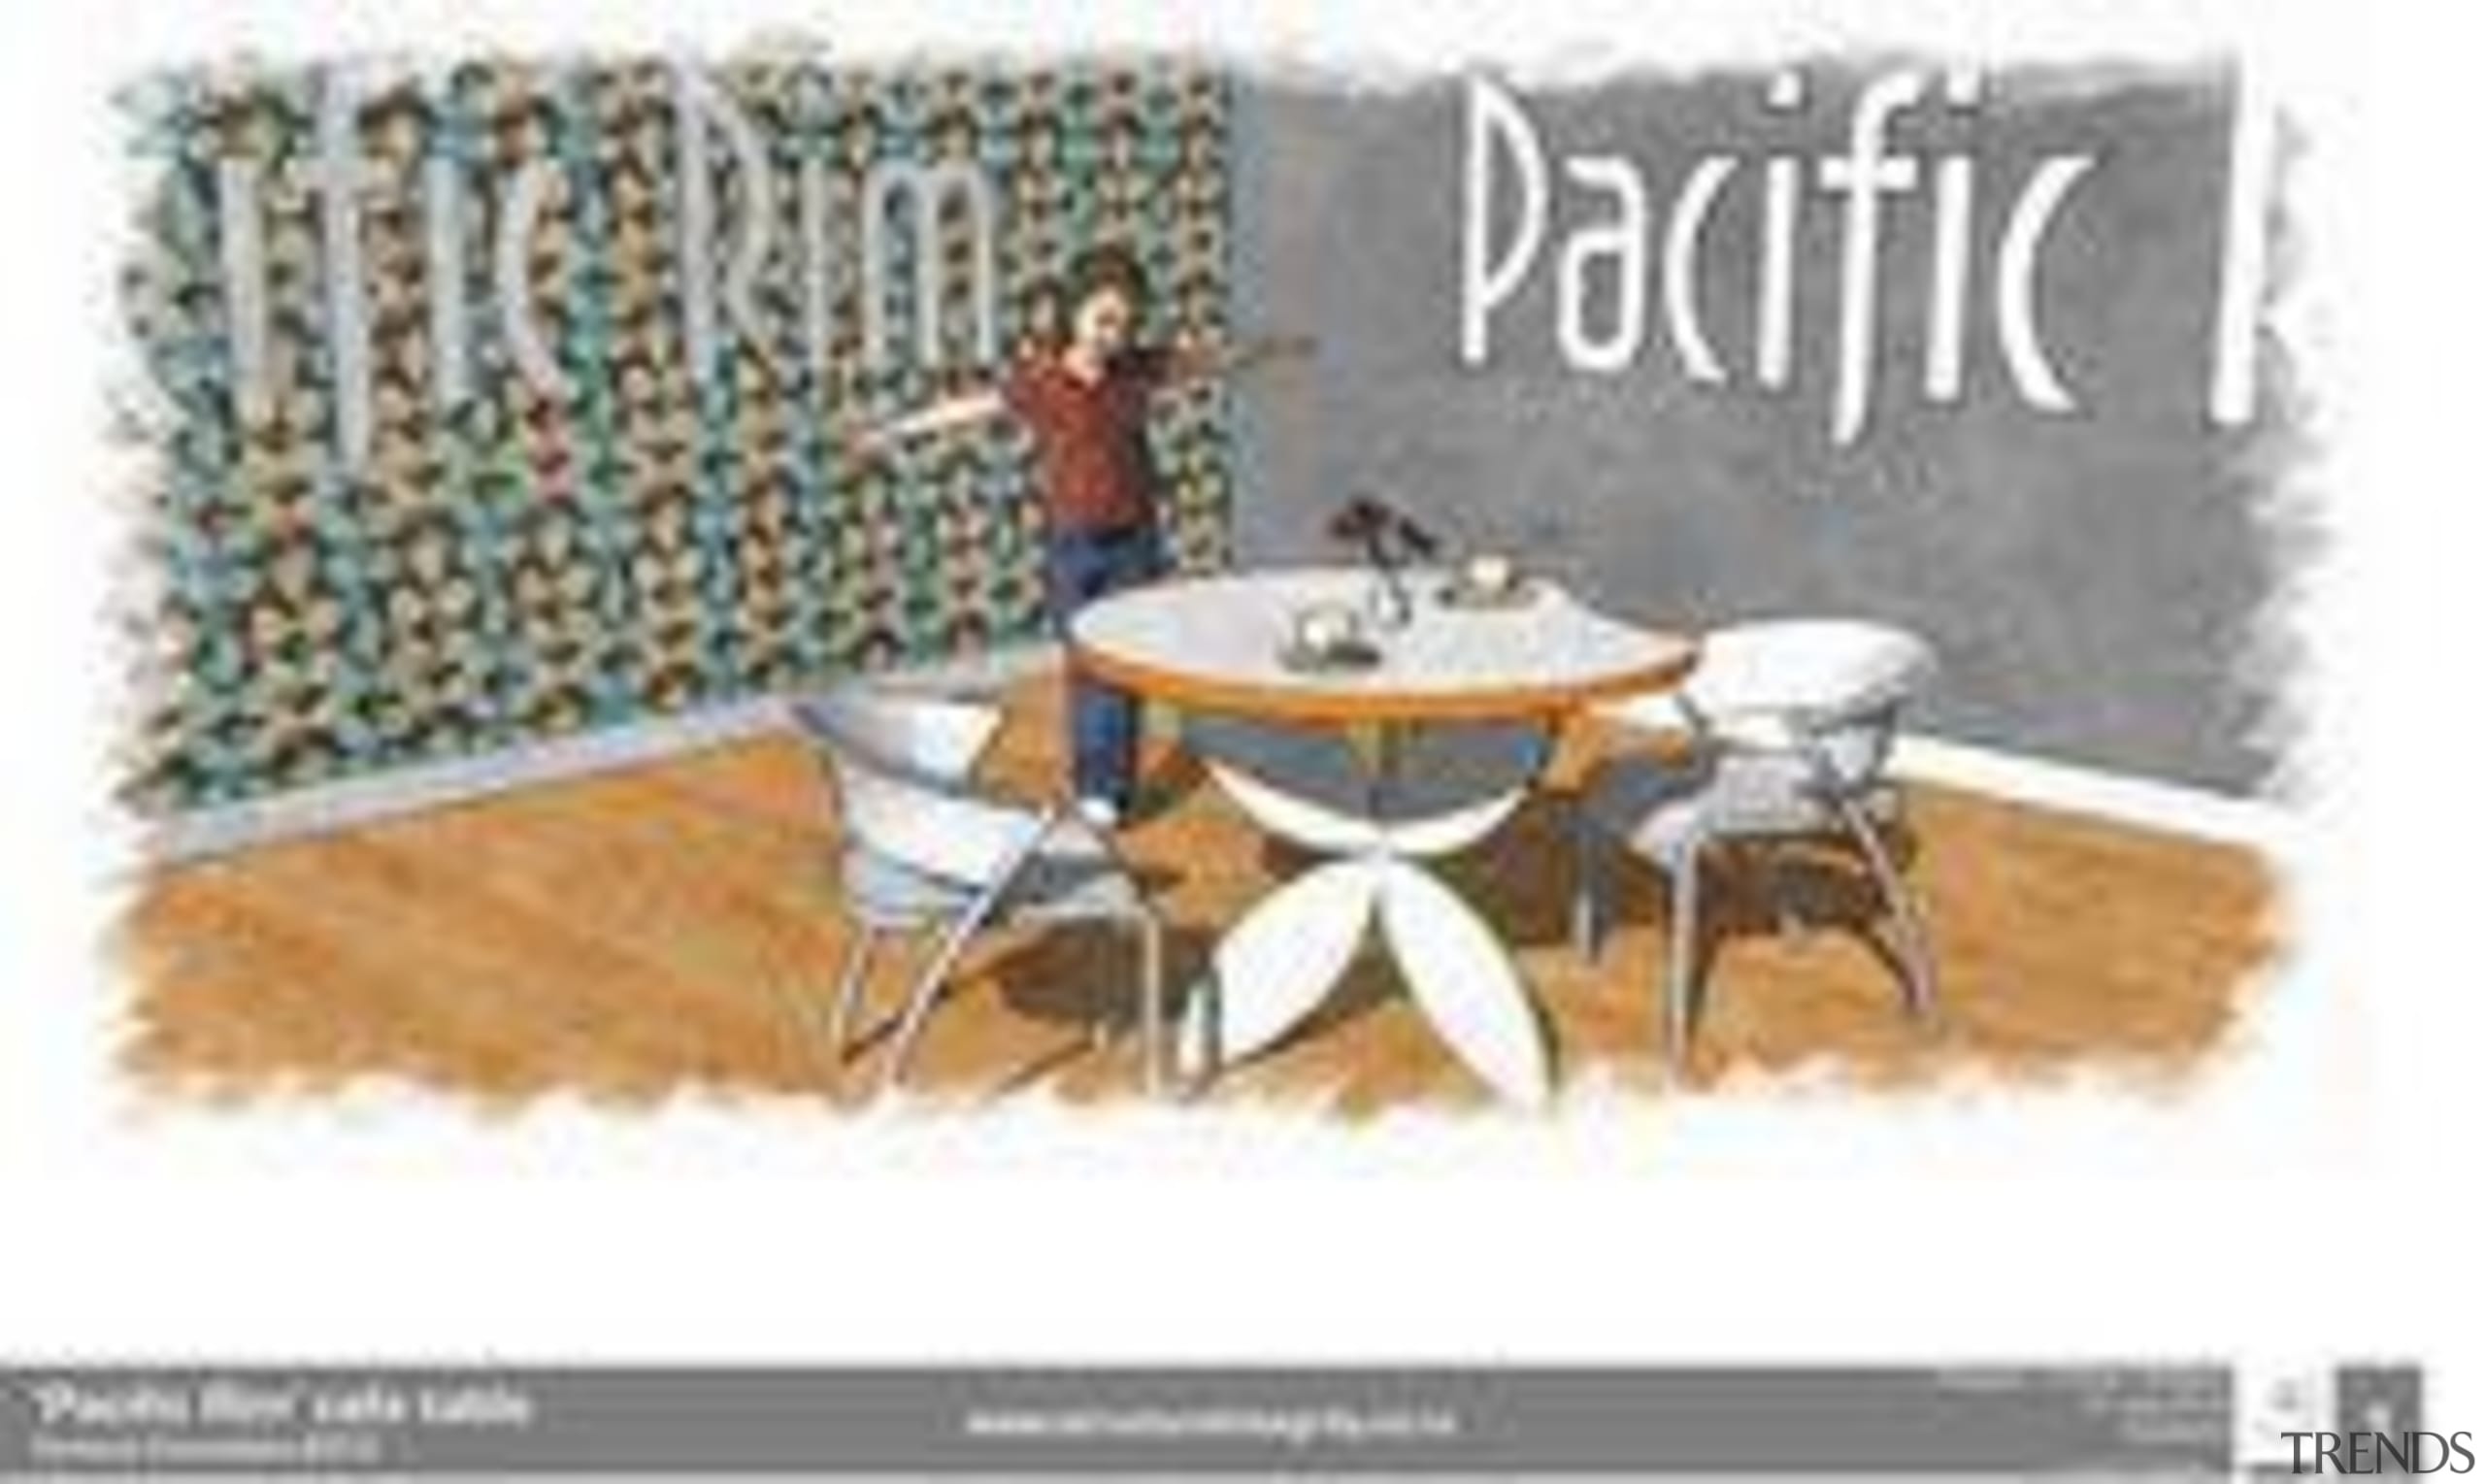 by Graham Roebeck - Pacific Rim - design design, font, furniture, product design, table, text, vintage advertisement, white, gray